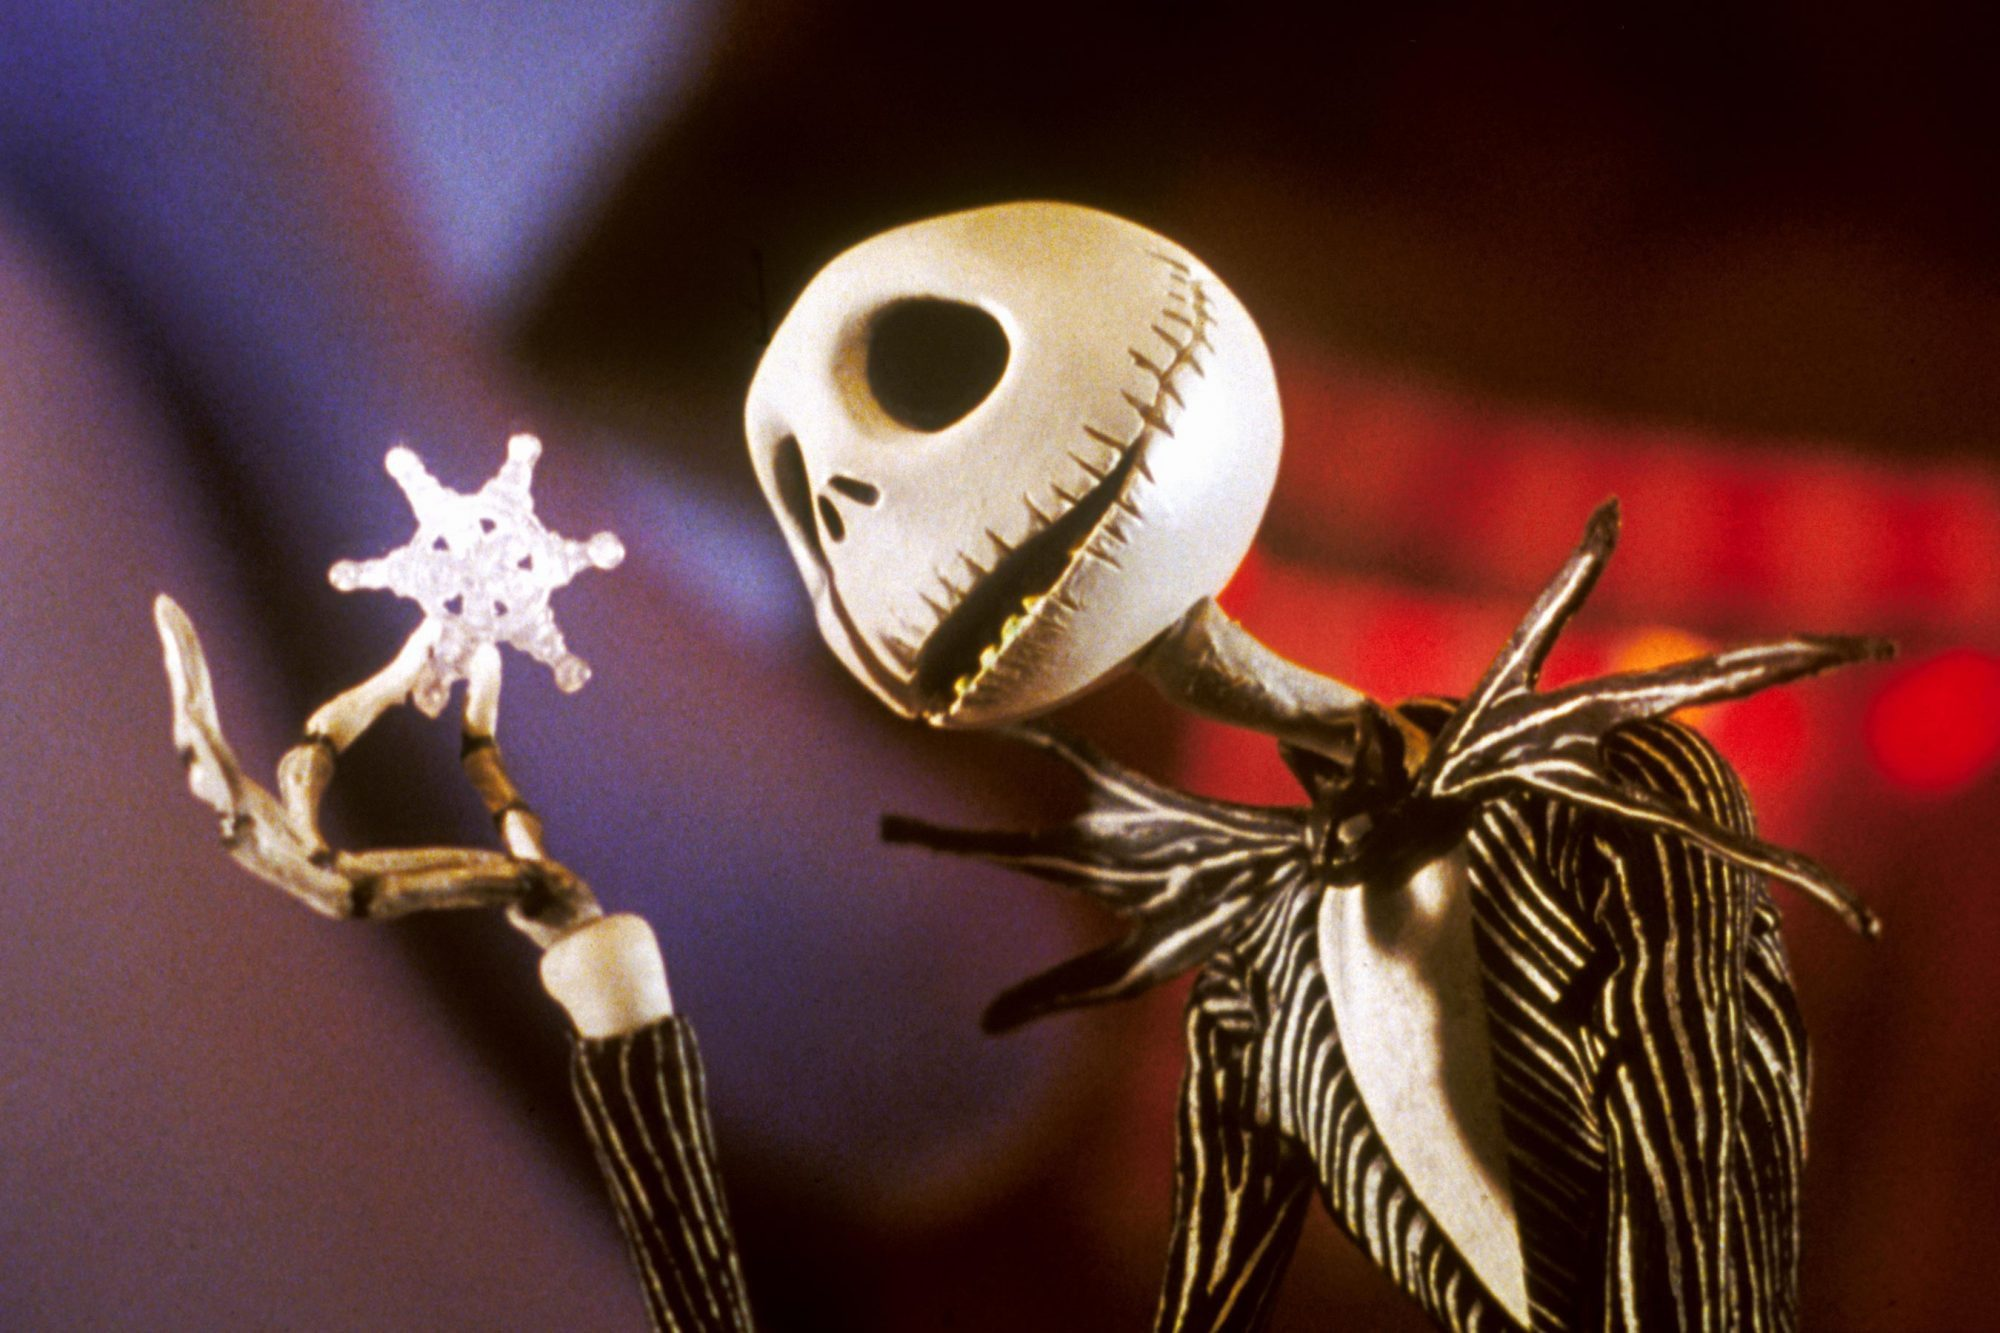 The Nightmare Before Christmas Jack Skellington holding snowflake